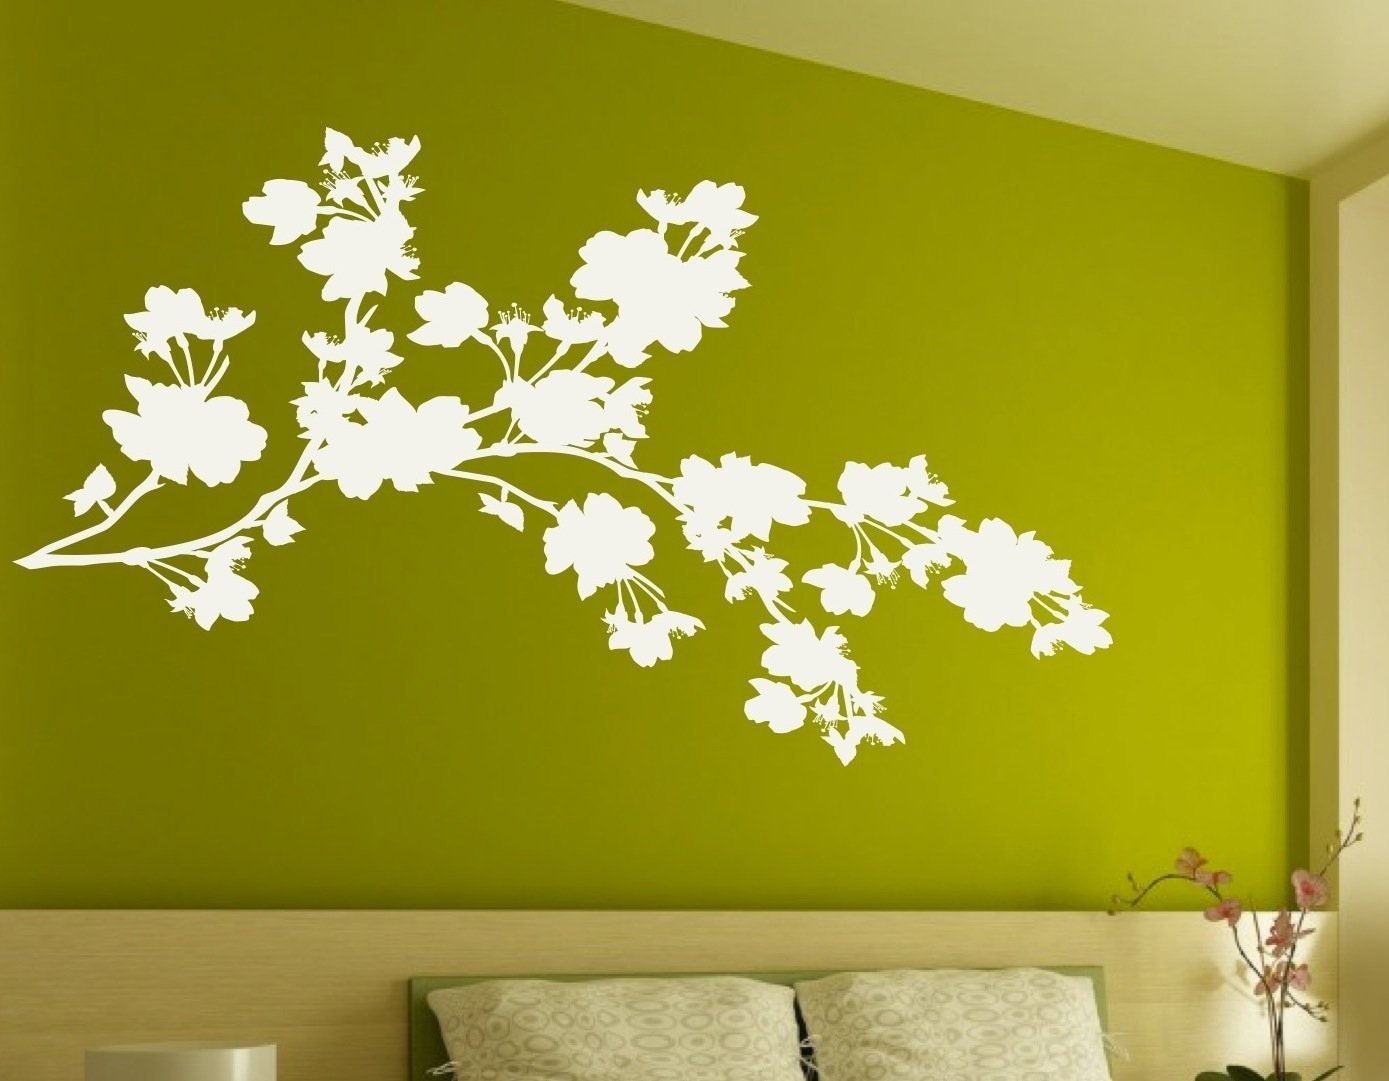 Floral Design Wall Decals : Floral branch wall decals sticker decor art mural free